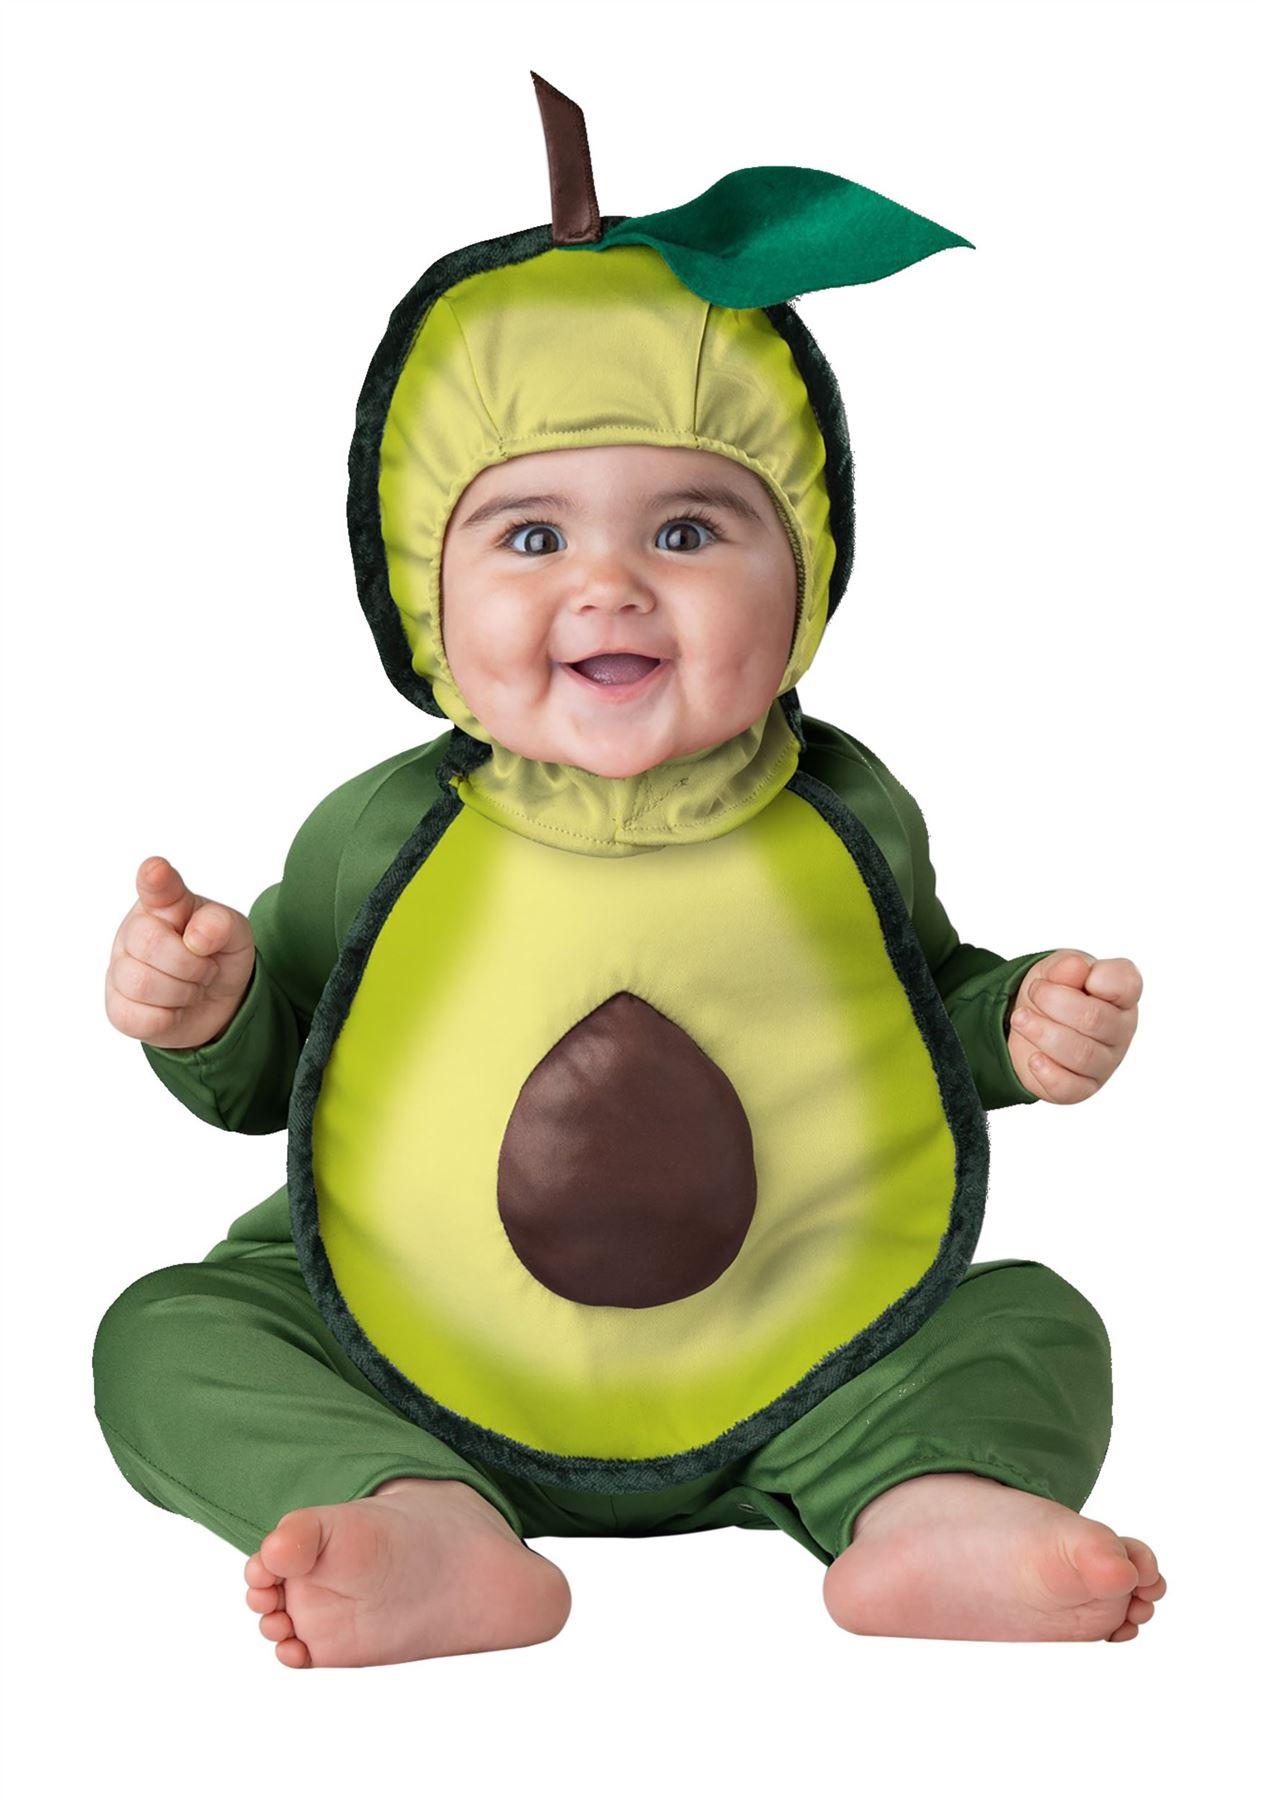 Adorable Baby Costume Ideas